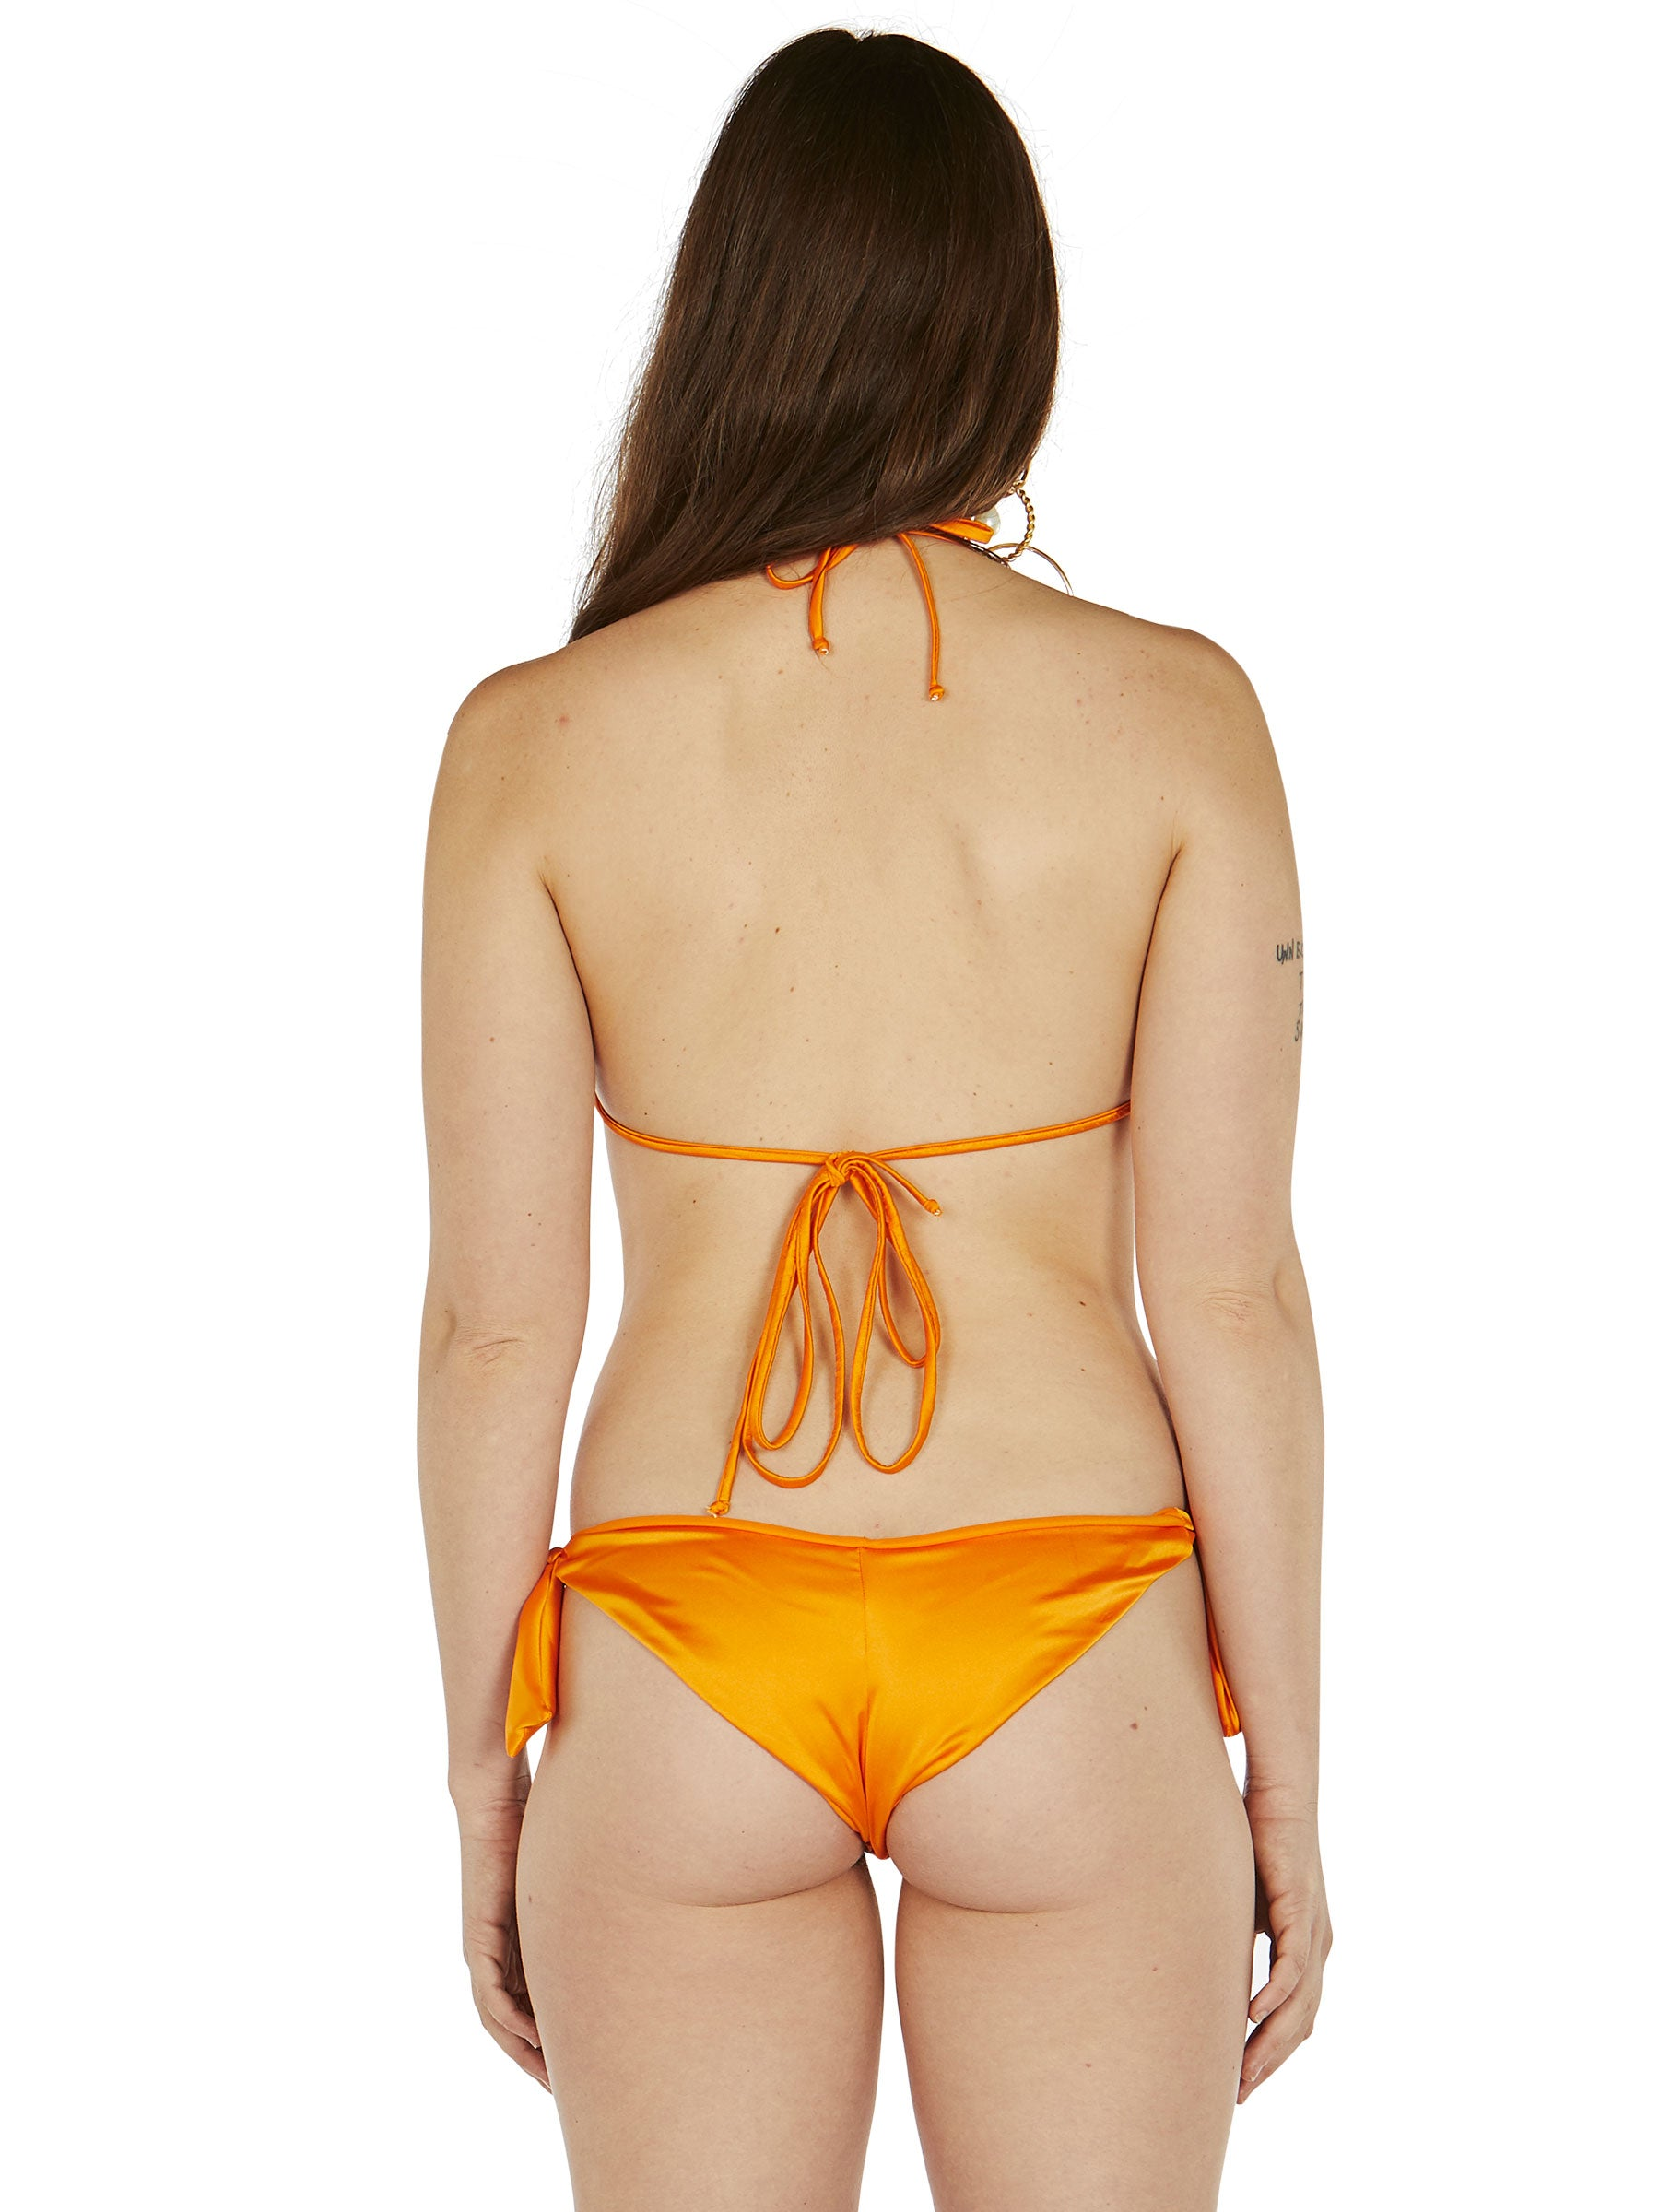 odd92 Fantabody Orange Satin String Bikini Spring/Summer 2019 Womenswear - 4